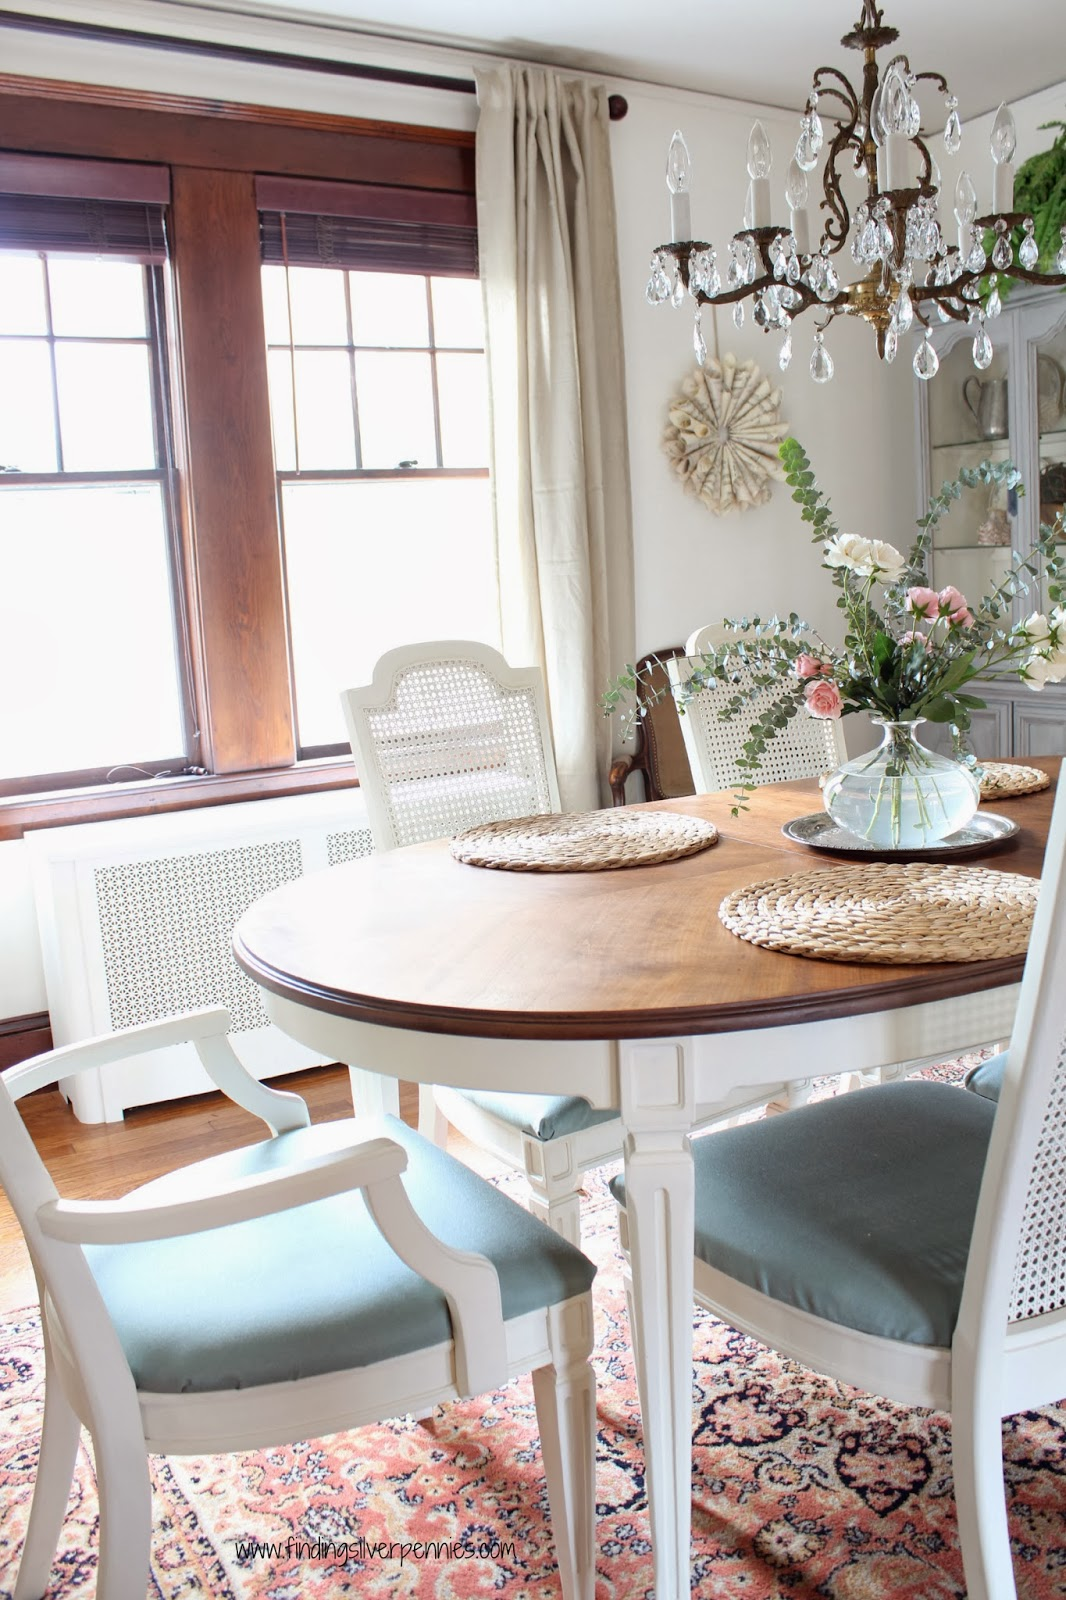 Painting Dining Room Furniture Dining Room Reveal Designing On A Dime Finding Silver Pennies